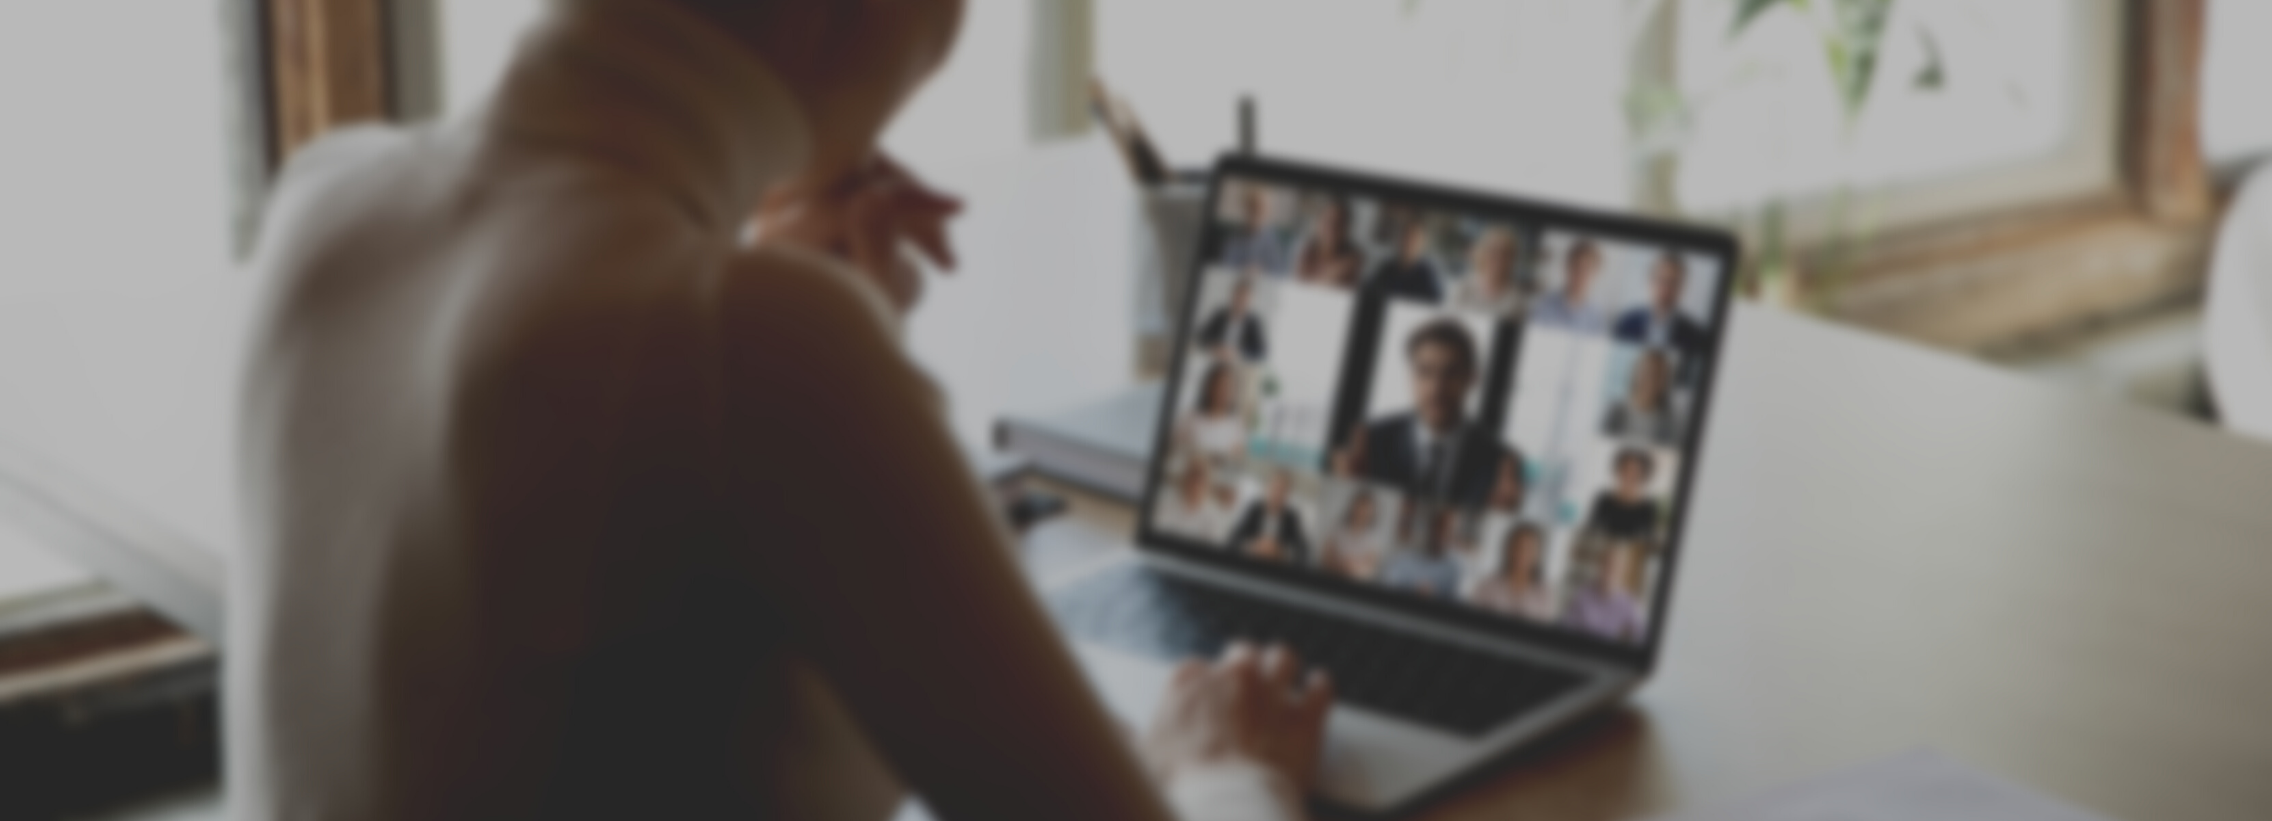 Tips for digital collaboration while remote